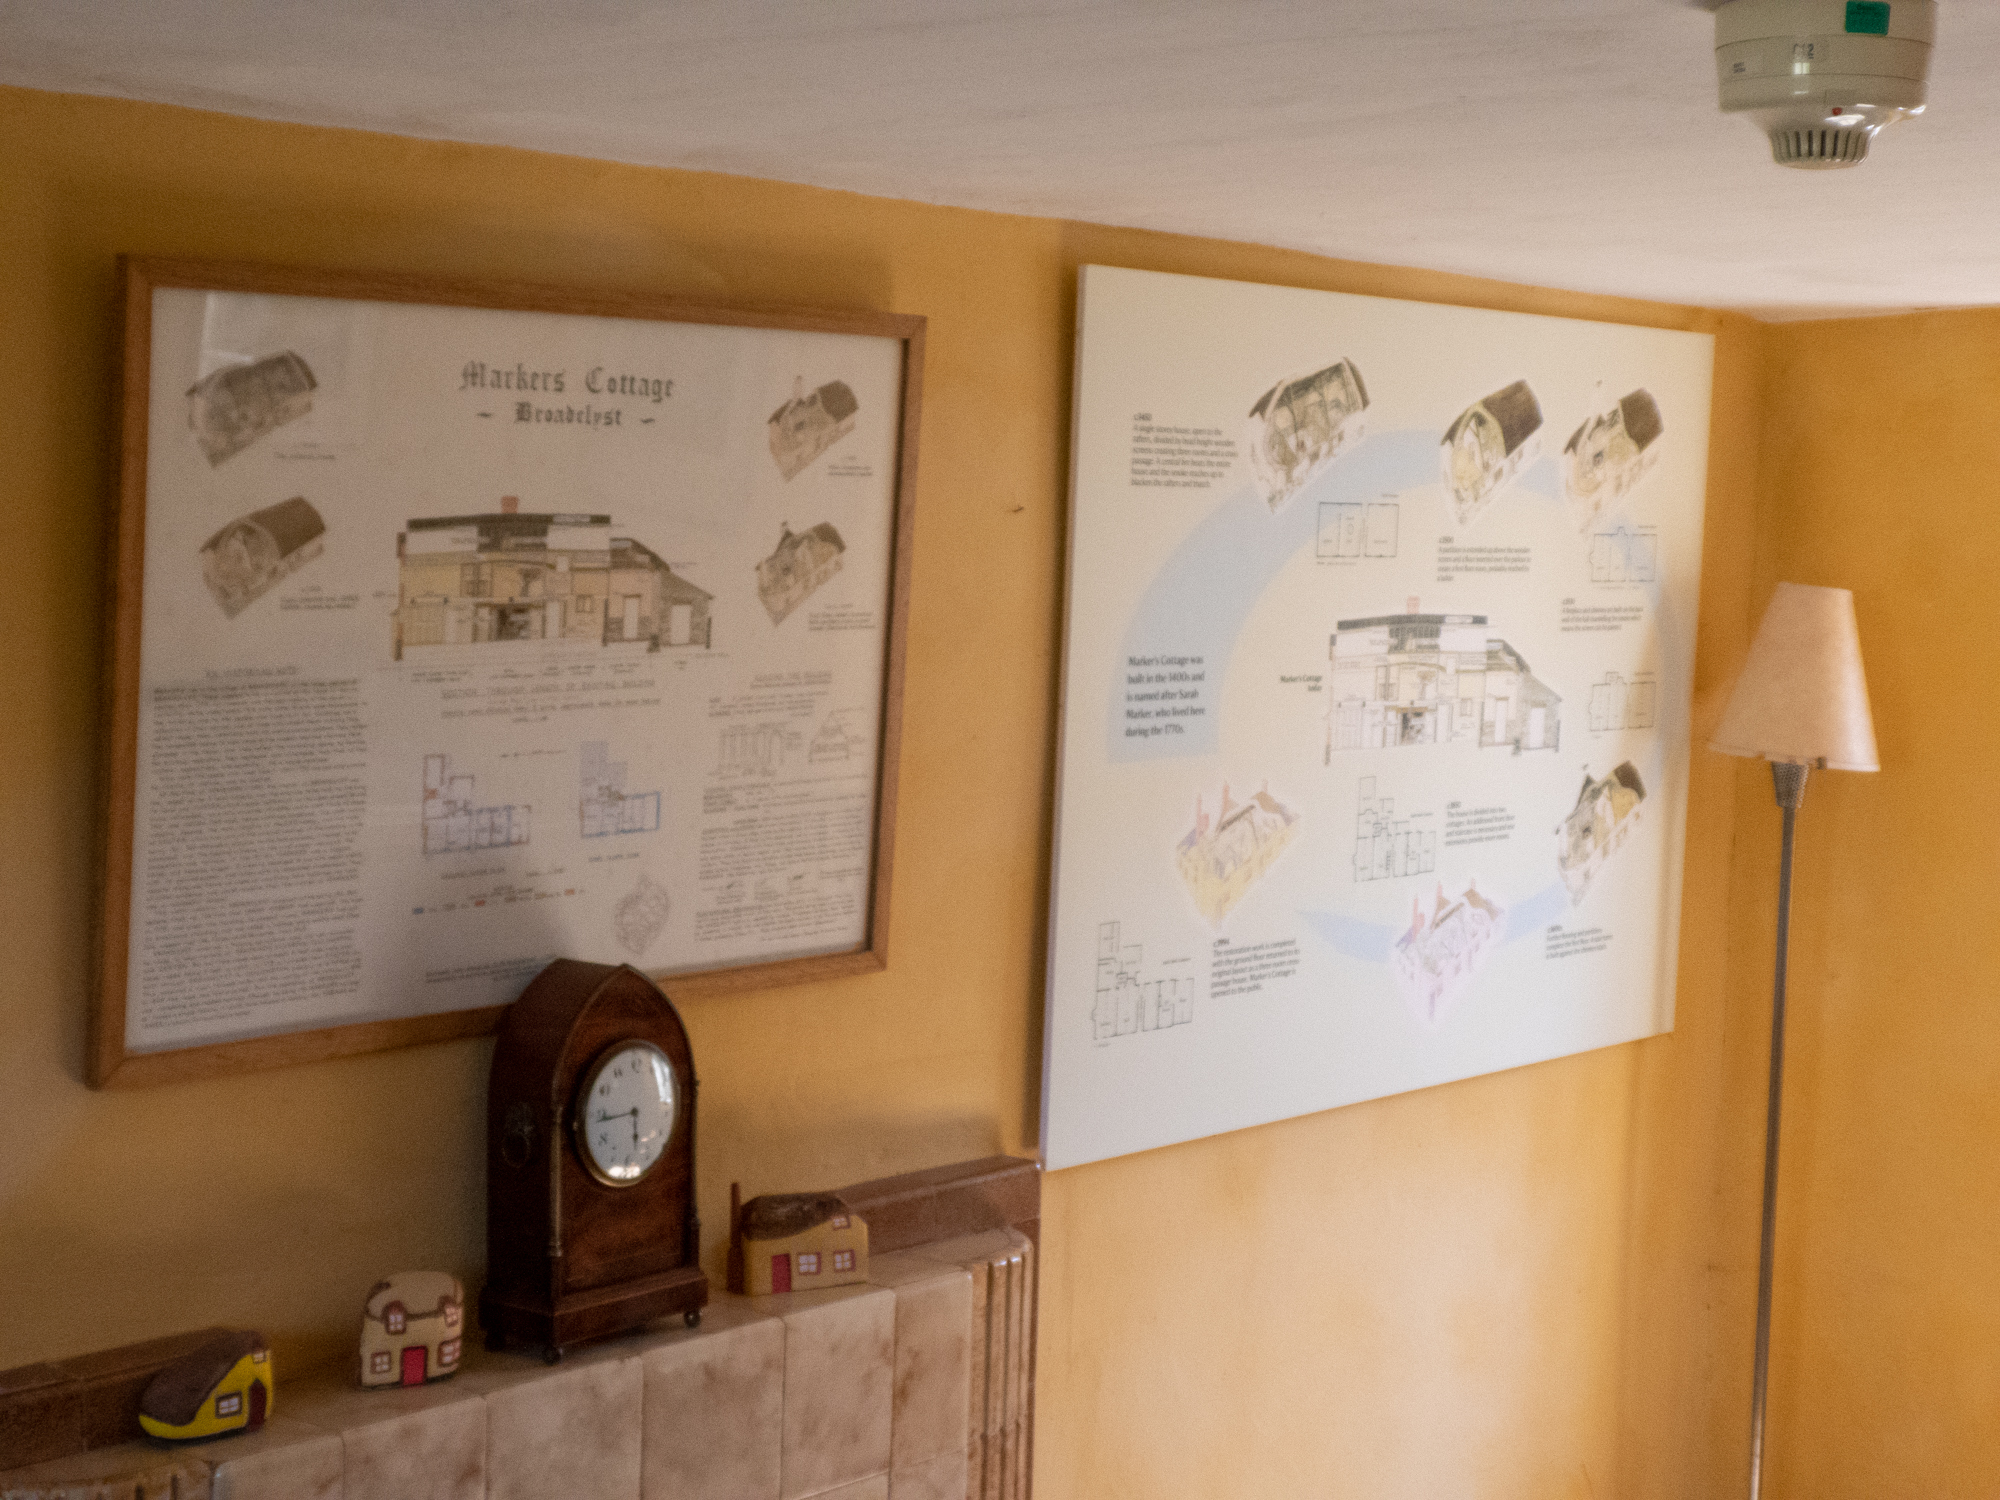 NT Markers CottNT Markers Cottage, Broadclyst, Killerton Estate, old and new interpretation posters in situage, Broadclyst, Killaerton Estate, interpretation posters in situ